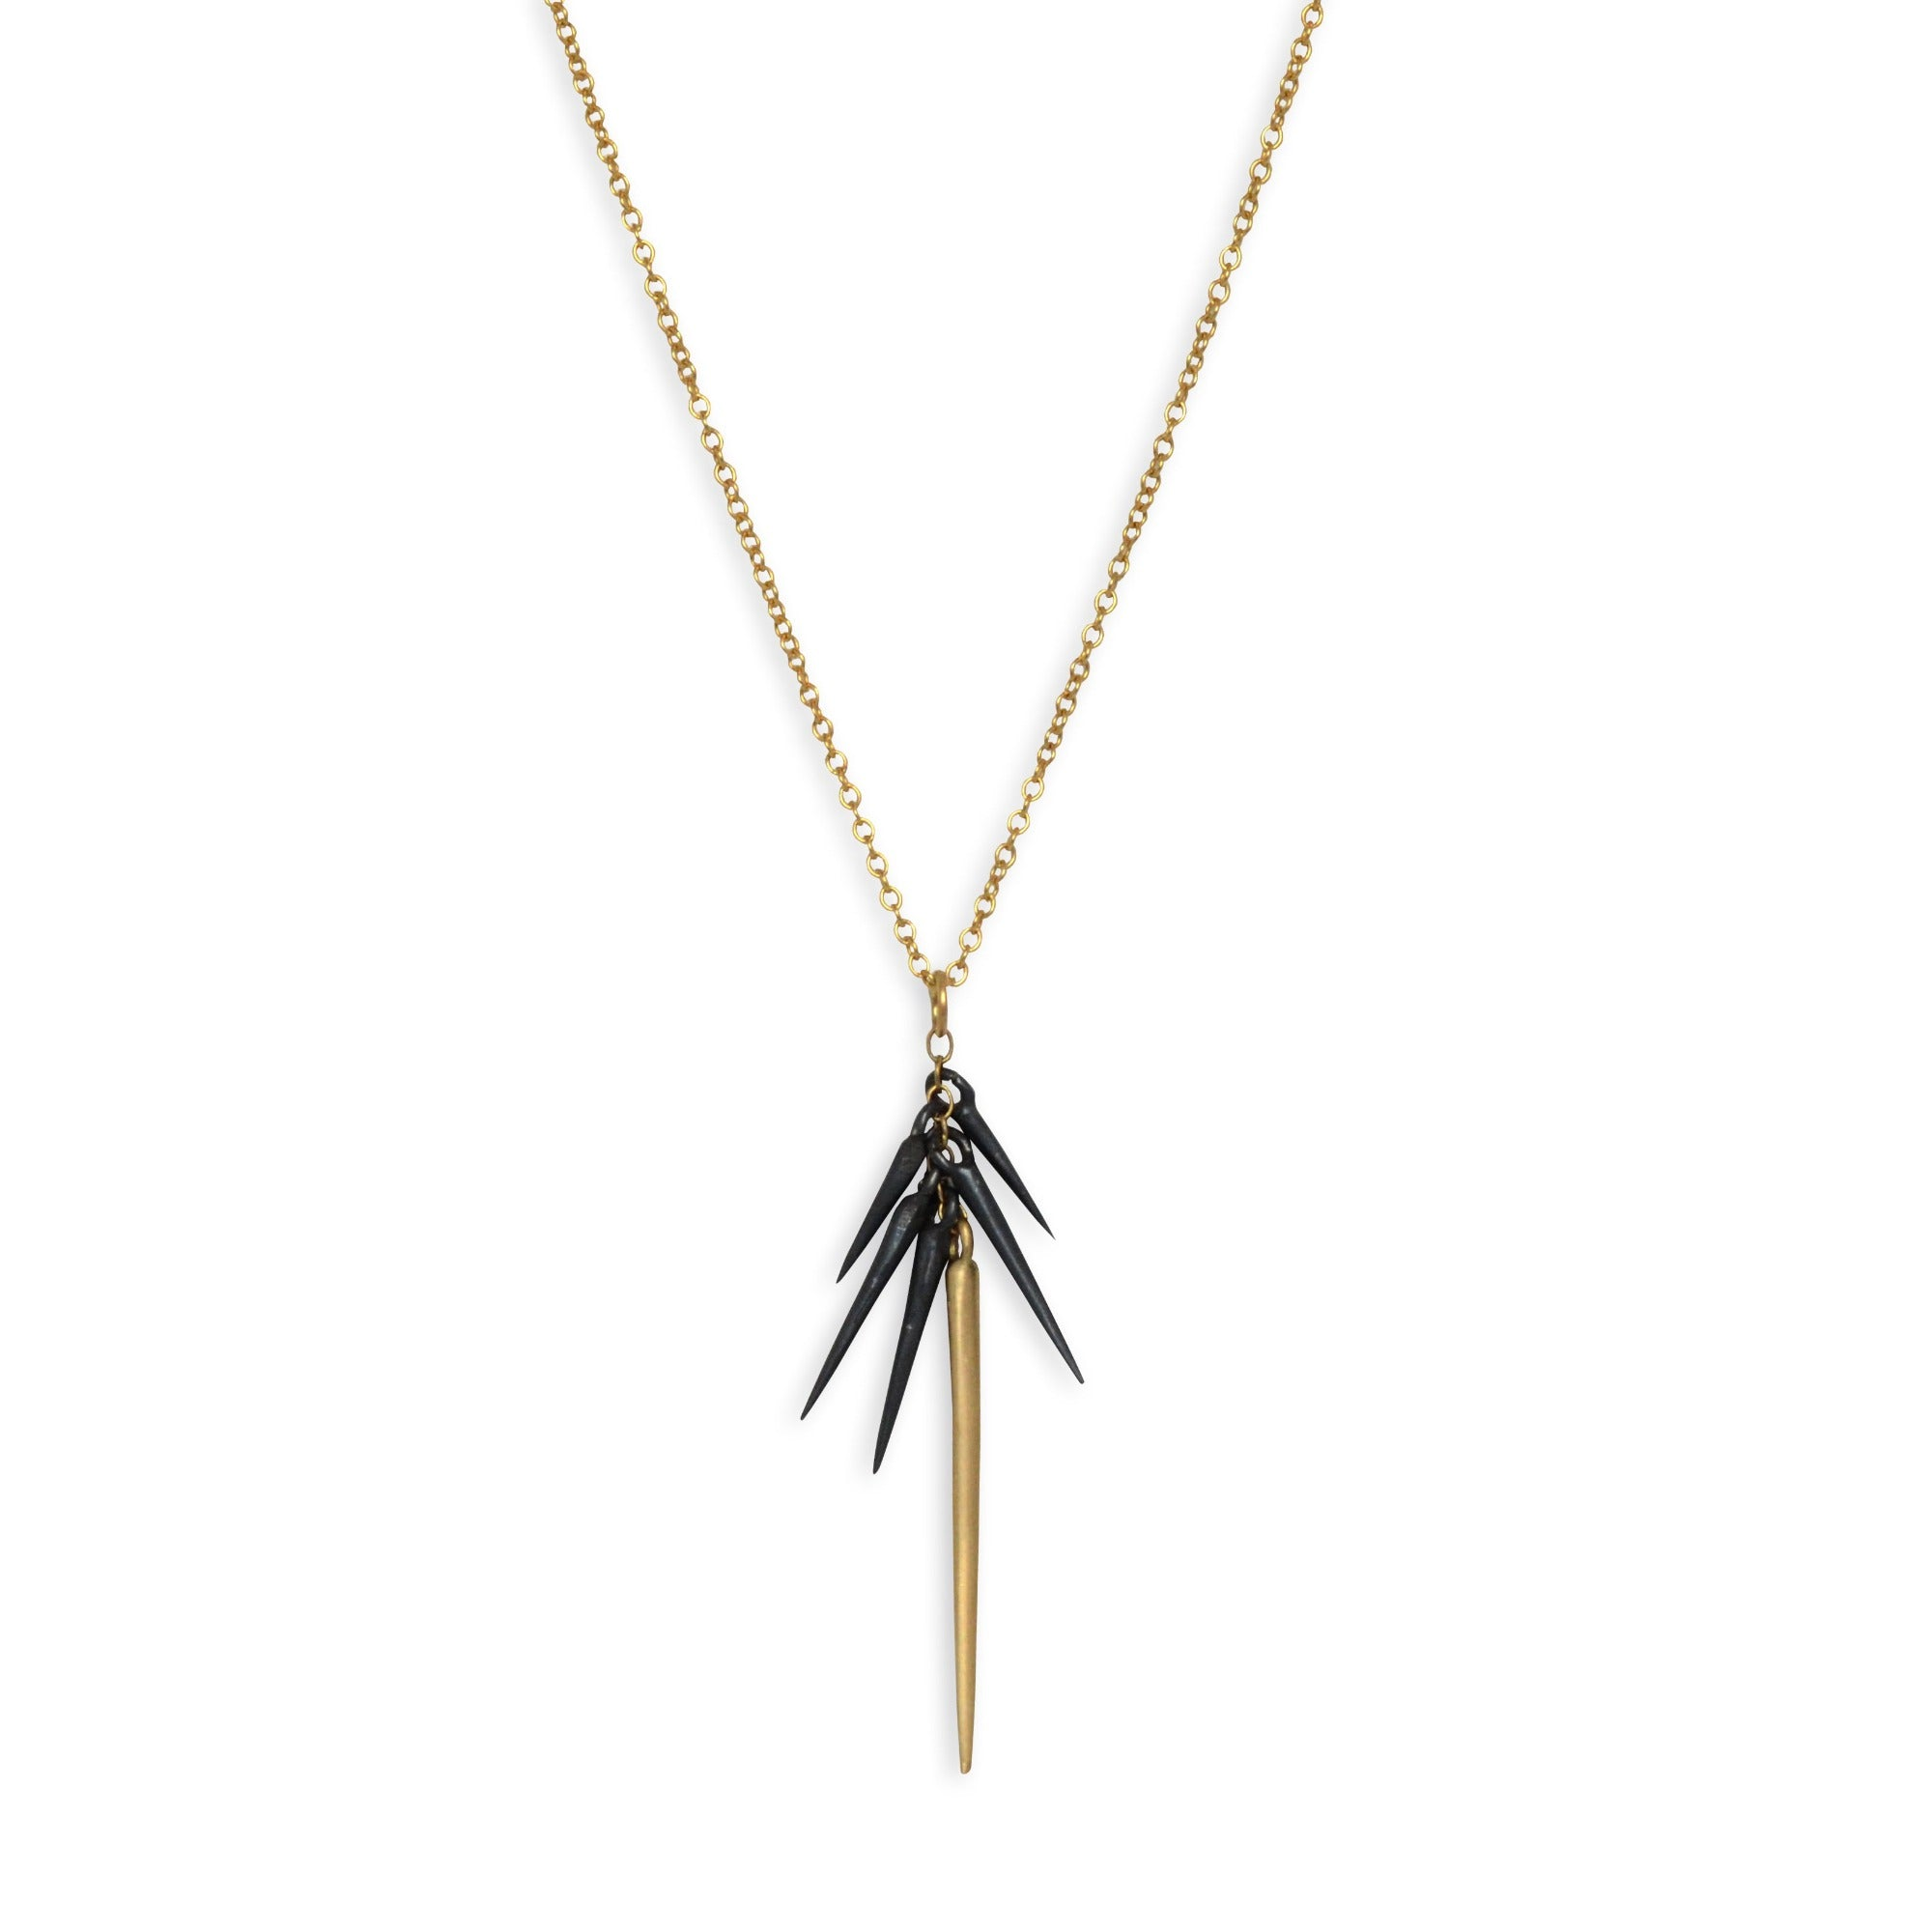 14k yellow gold/oxidized silver small point cluster necklace